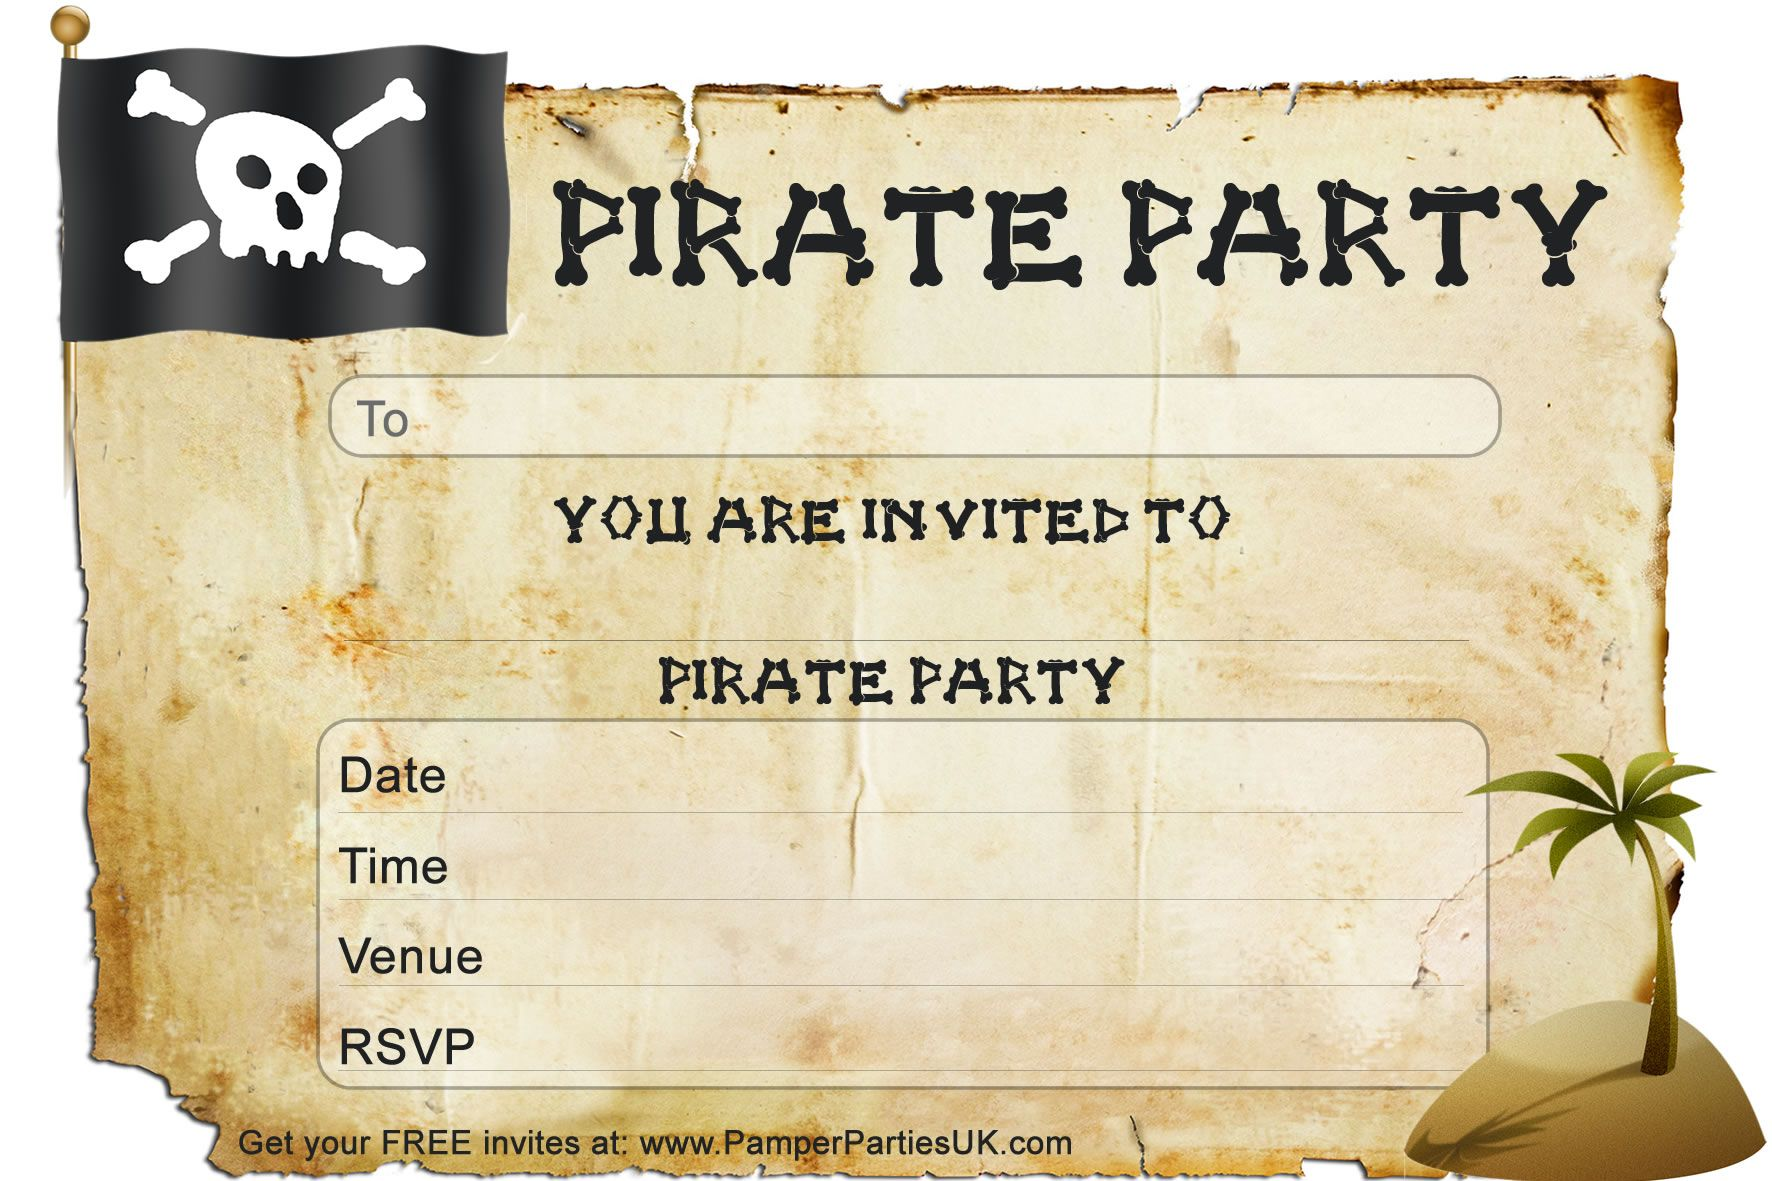 pirate_invite.jpg 5,5×5,585 pixels  Pirate party invitations